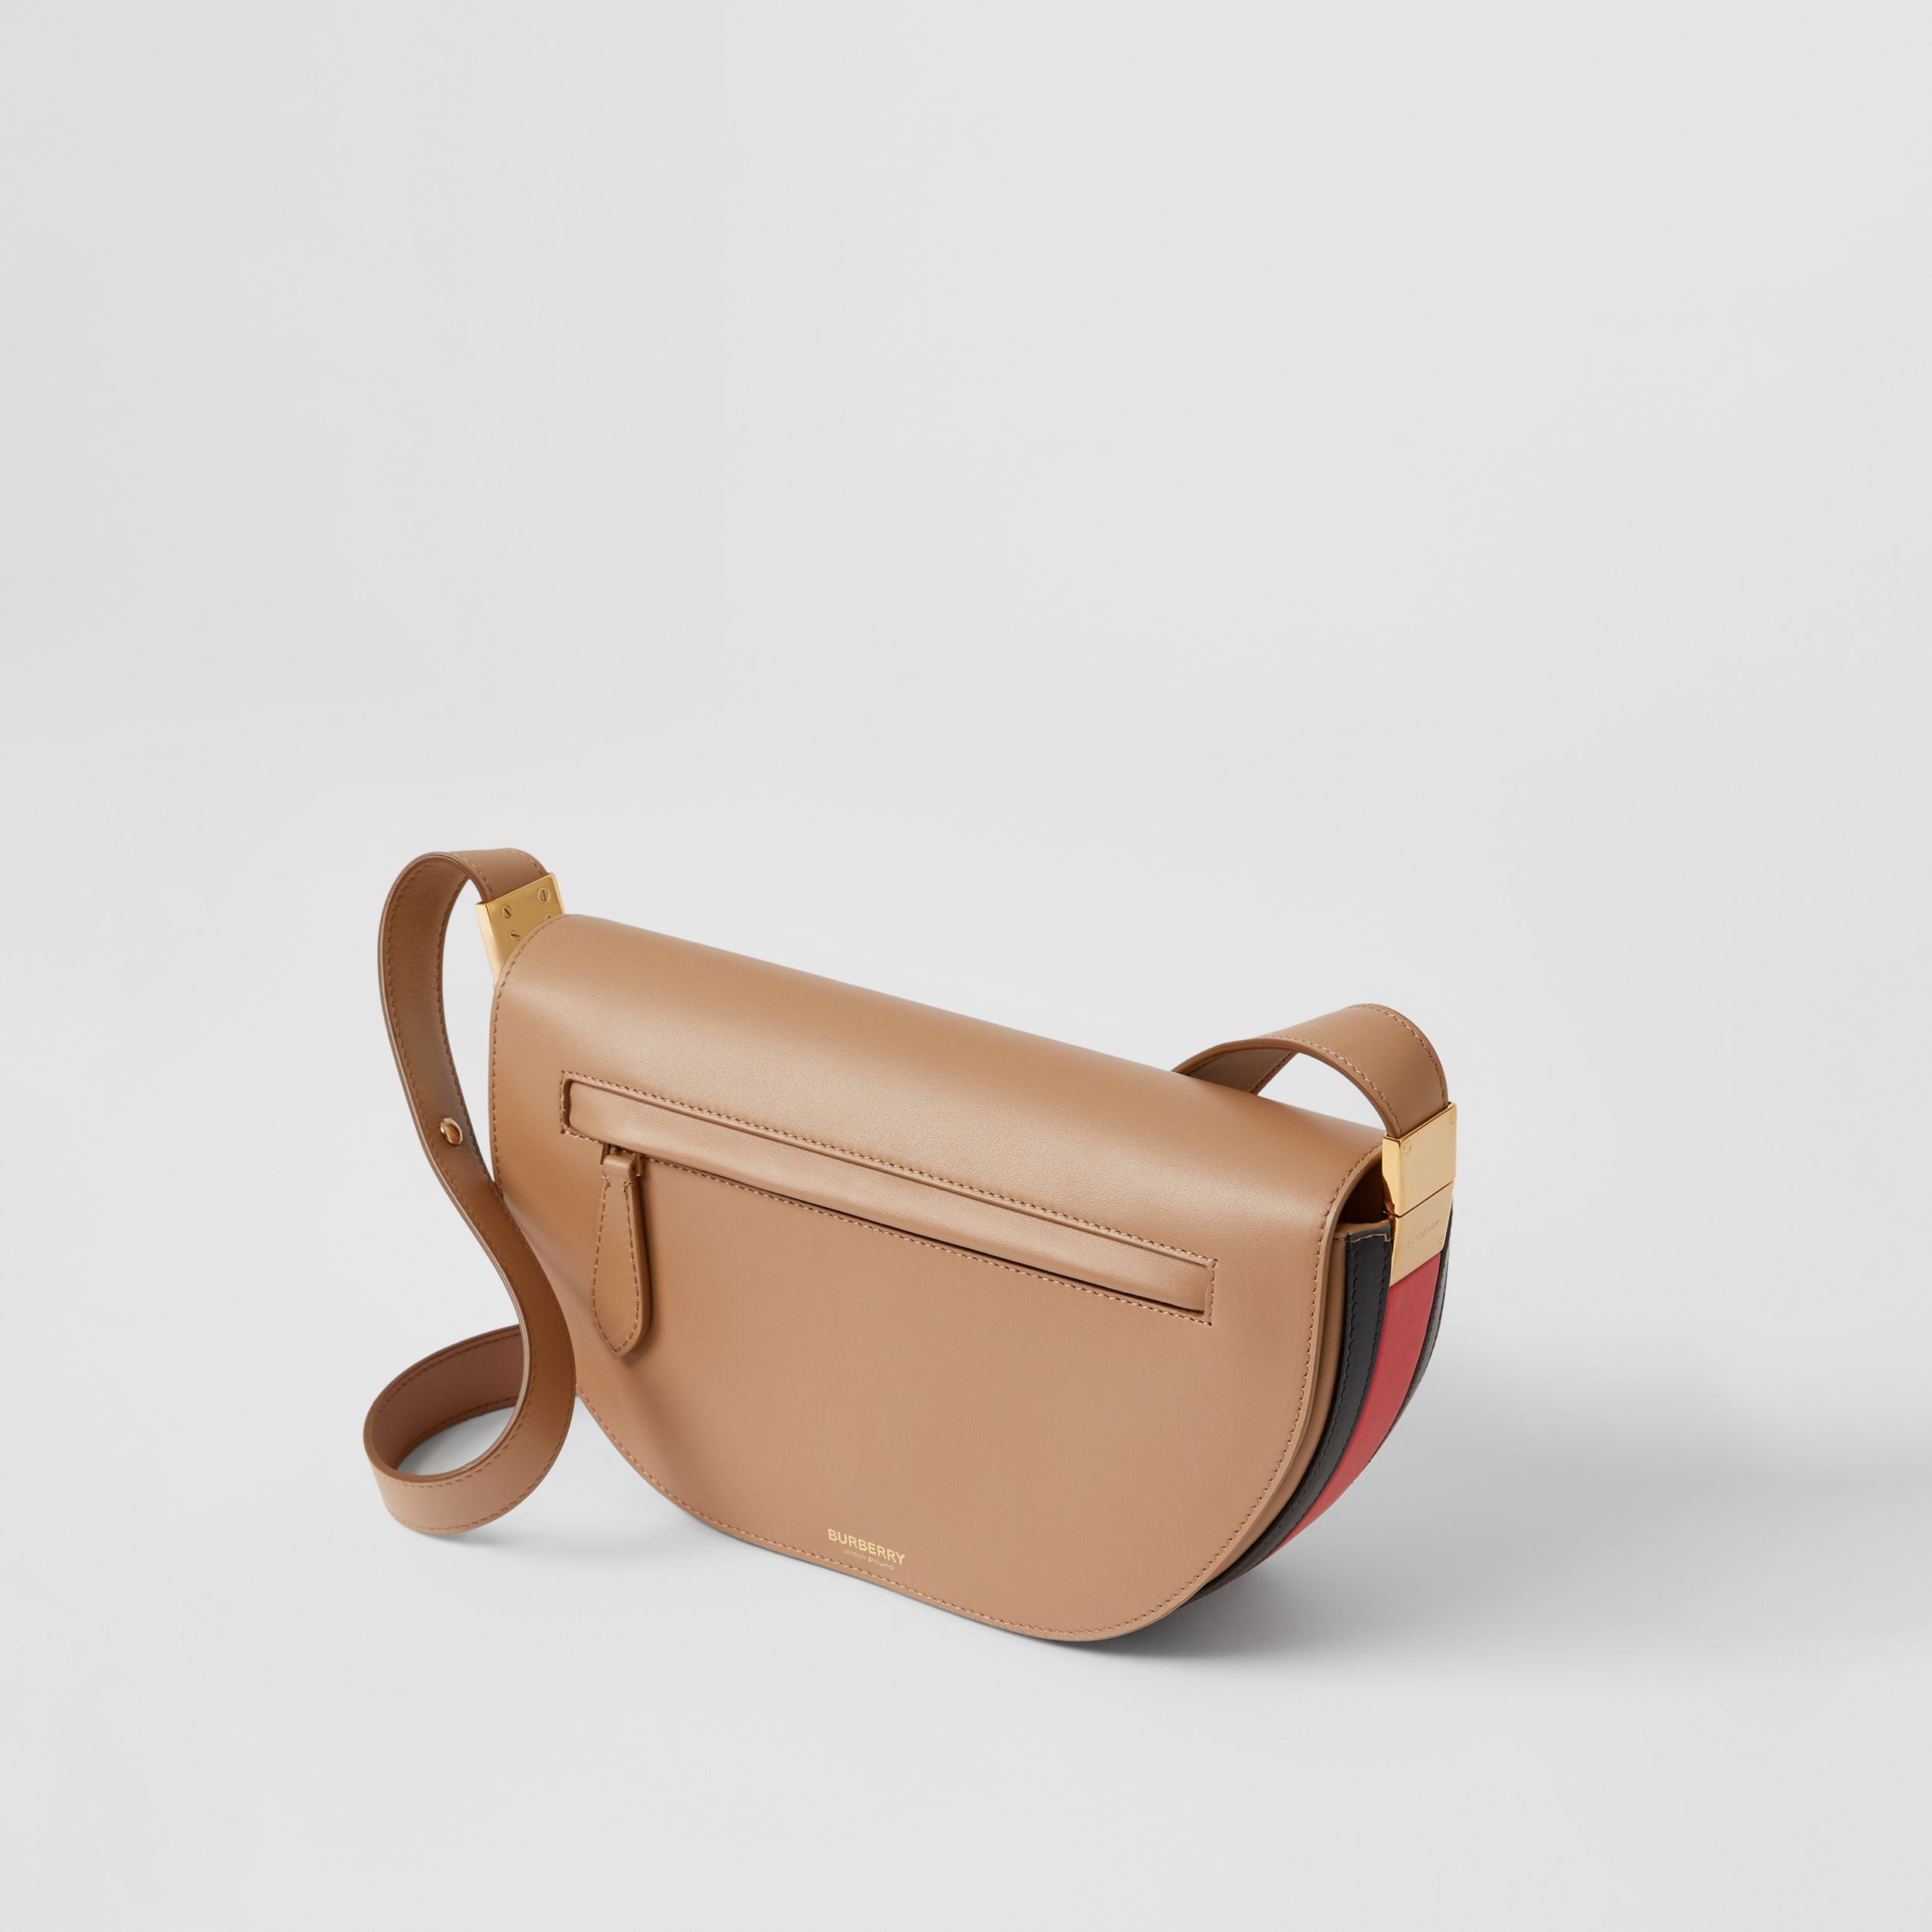 Small Leather Olympia Bag in Camel - Women | Burberry United Kingdom - 4